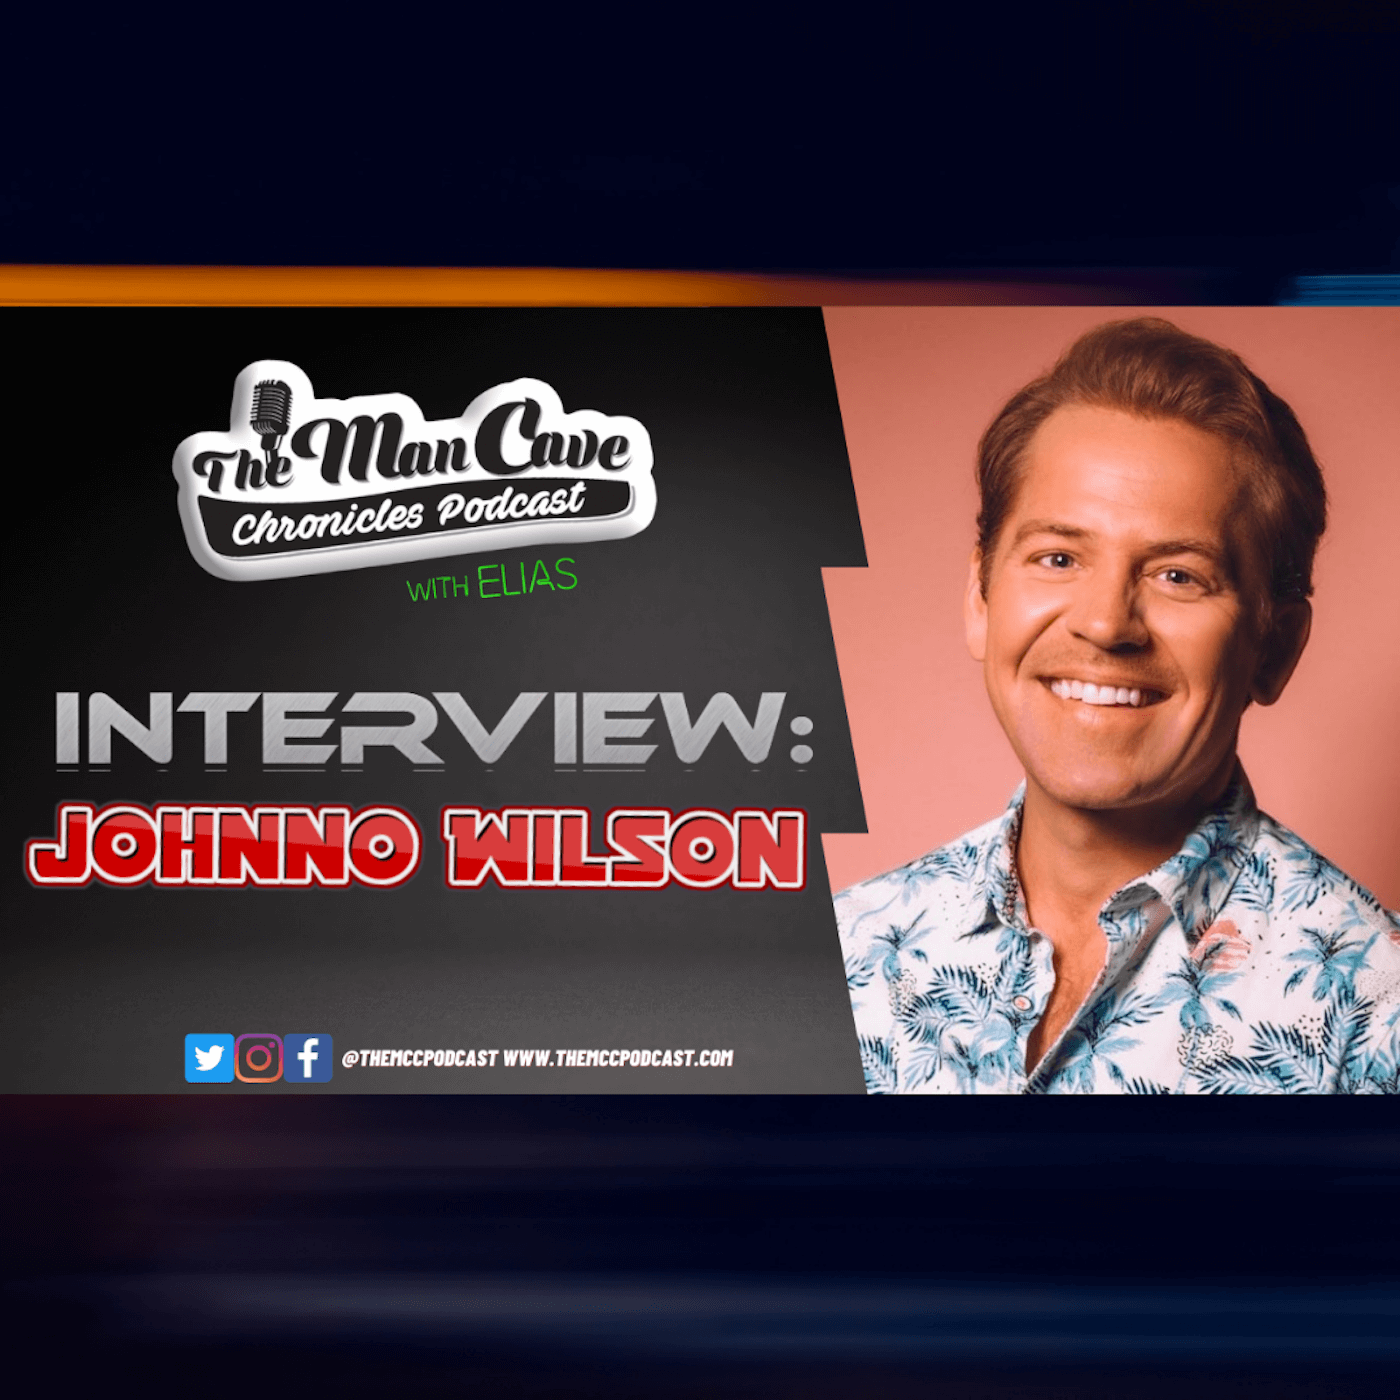 Johnno Wilson talks about improv comedy, celebrity impressions and more!